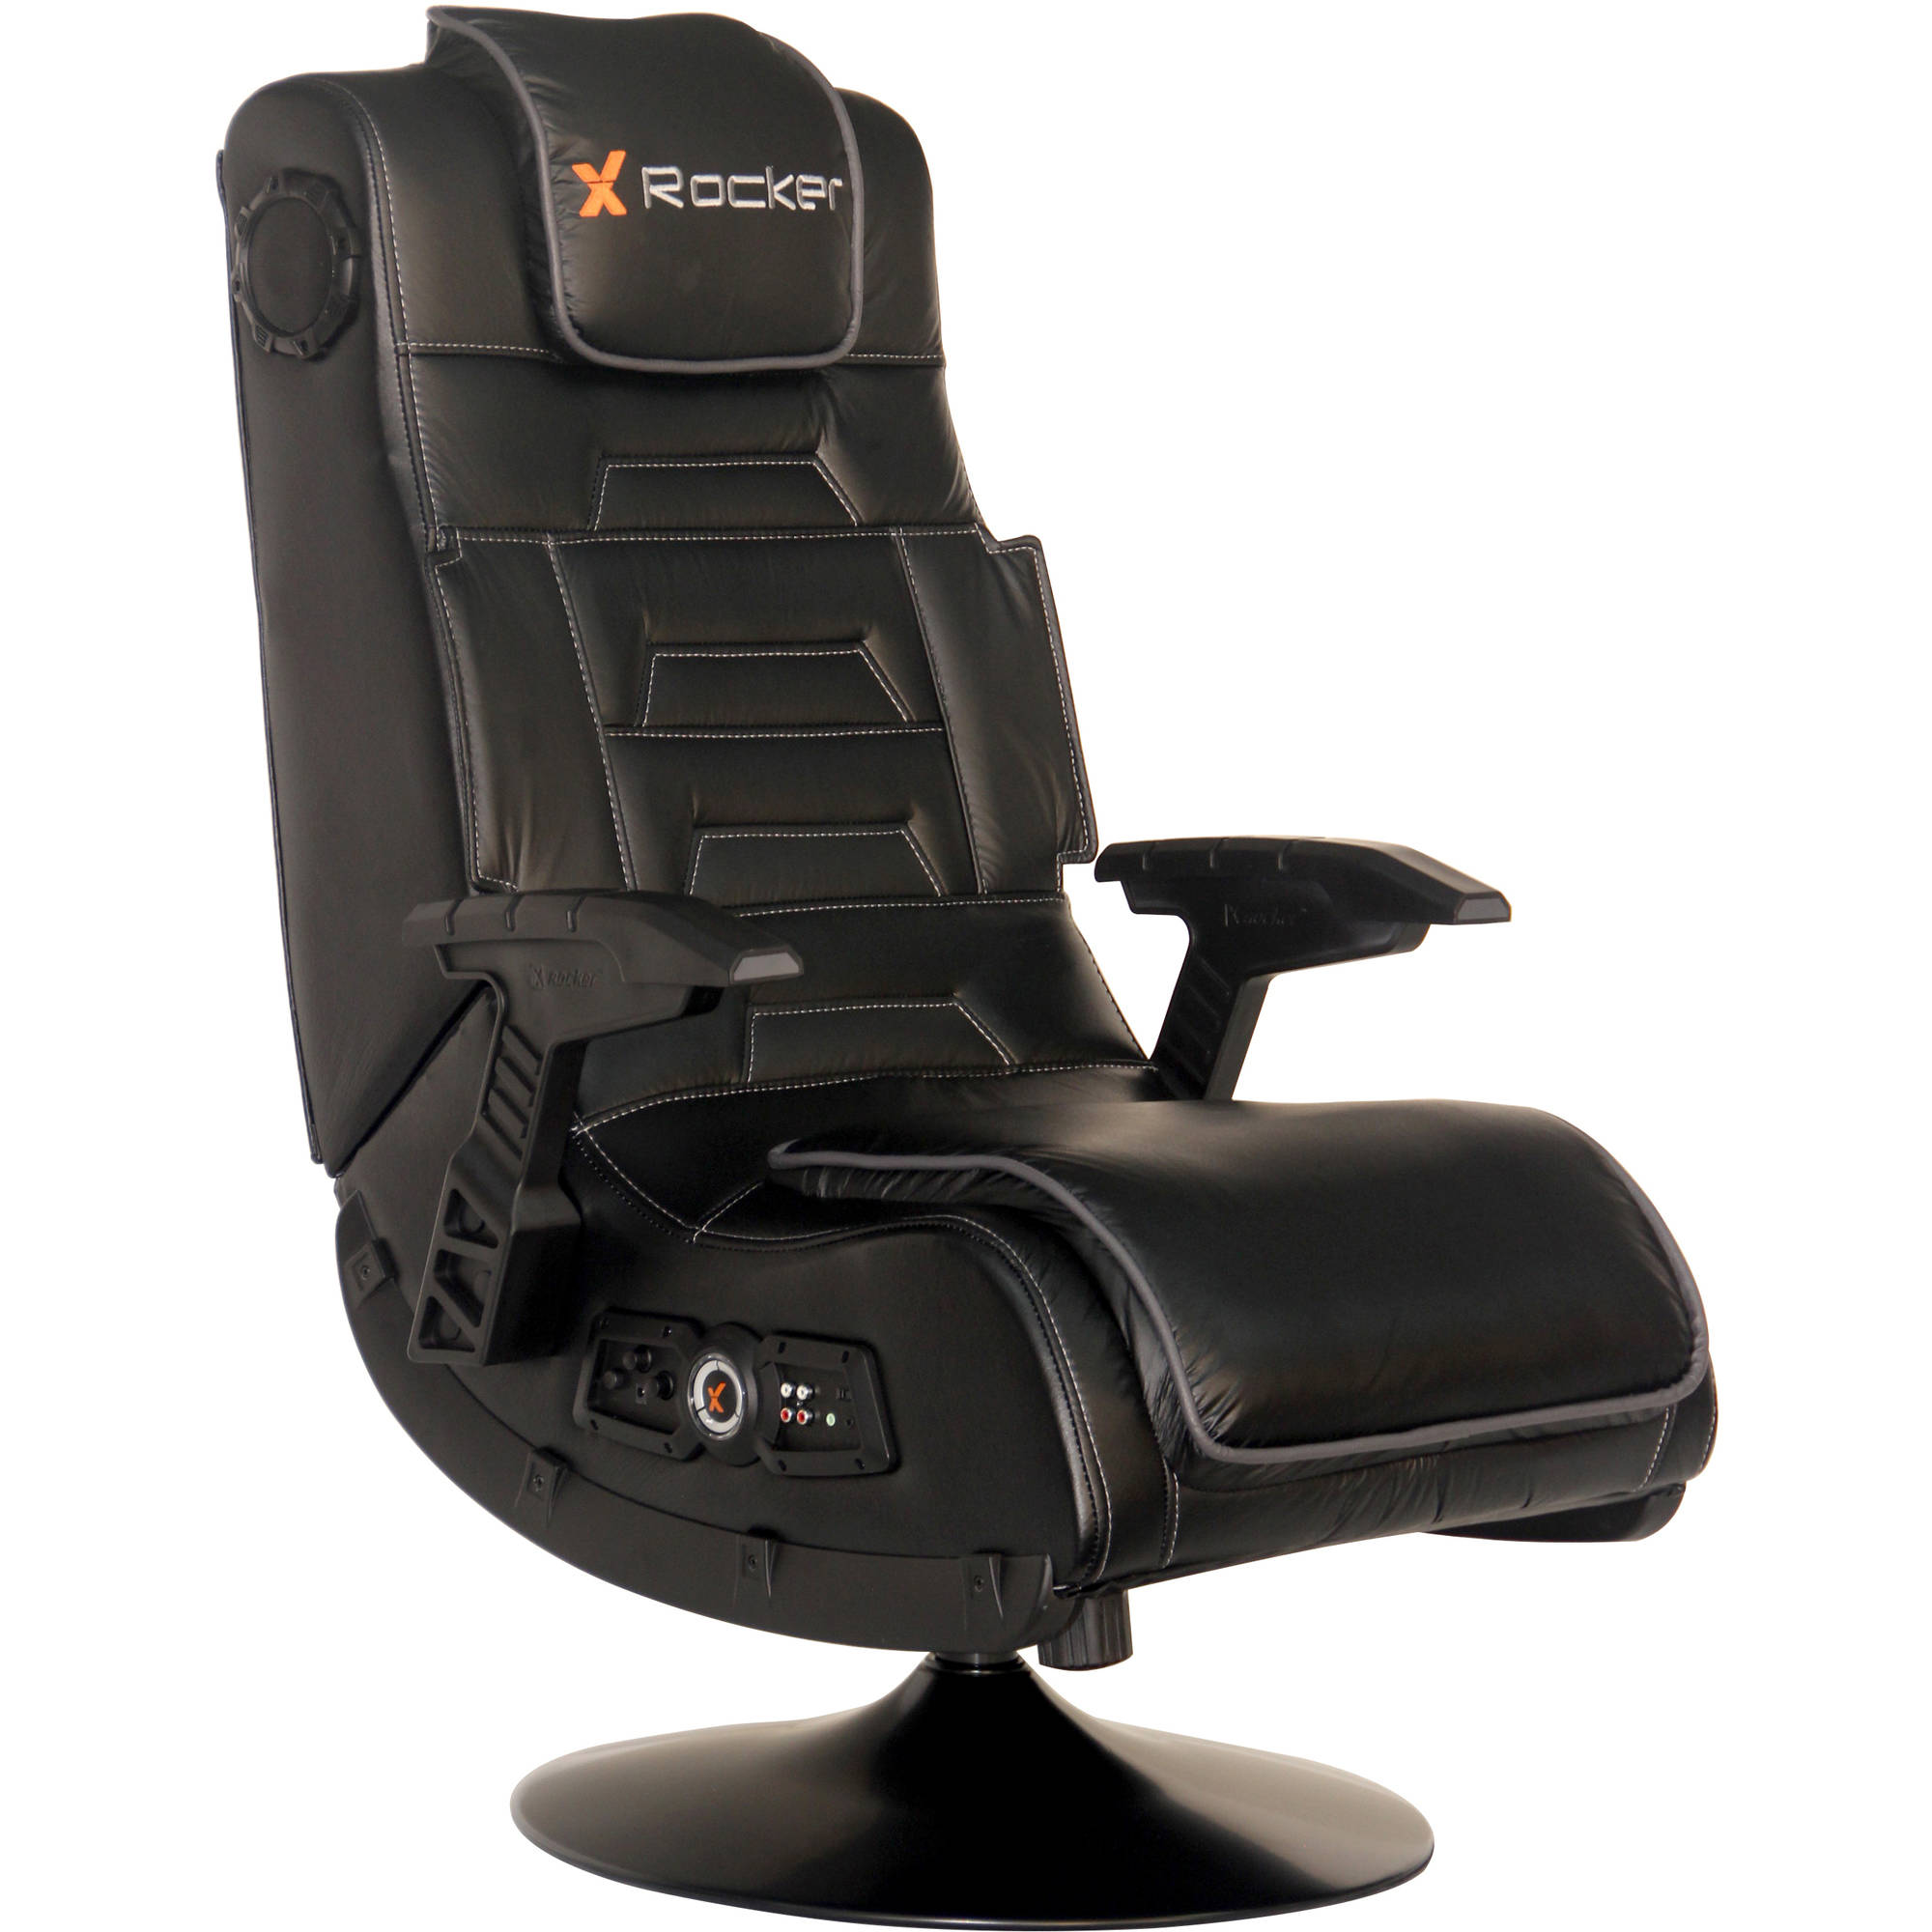 Gaming Sessel Ebay X Rocker Gaming Chair Ebay Uk Best House Interior Today